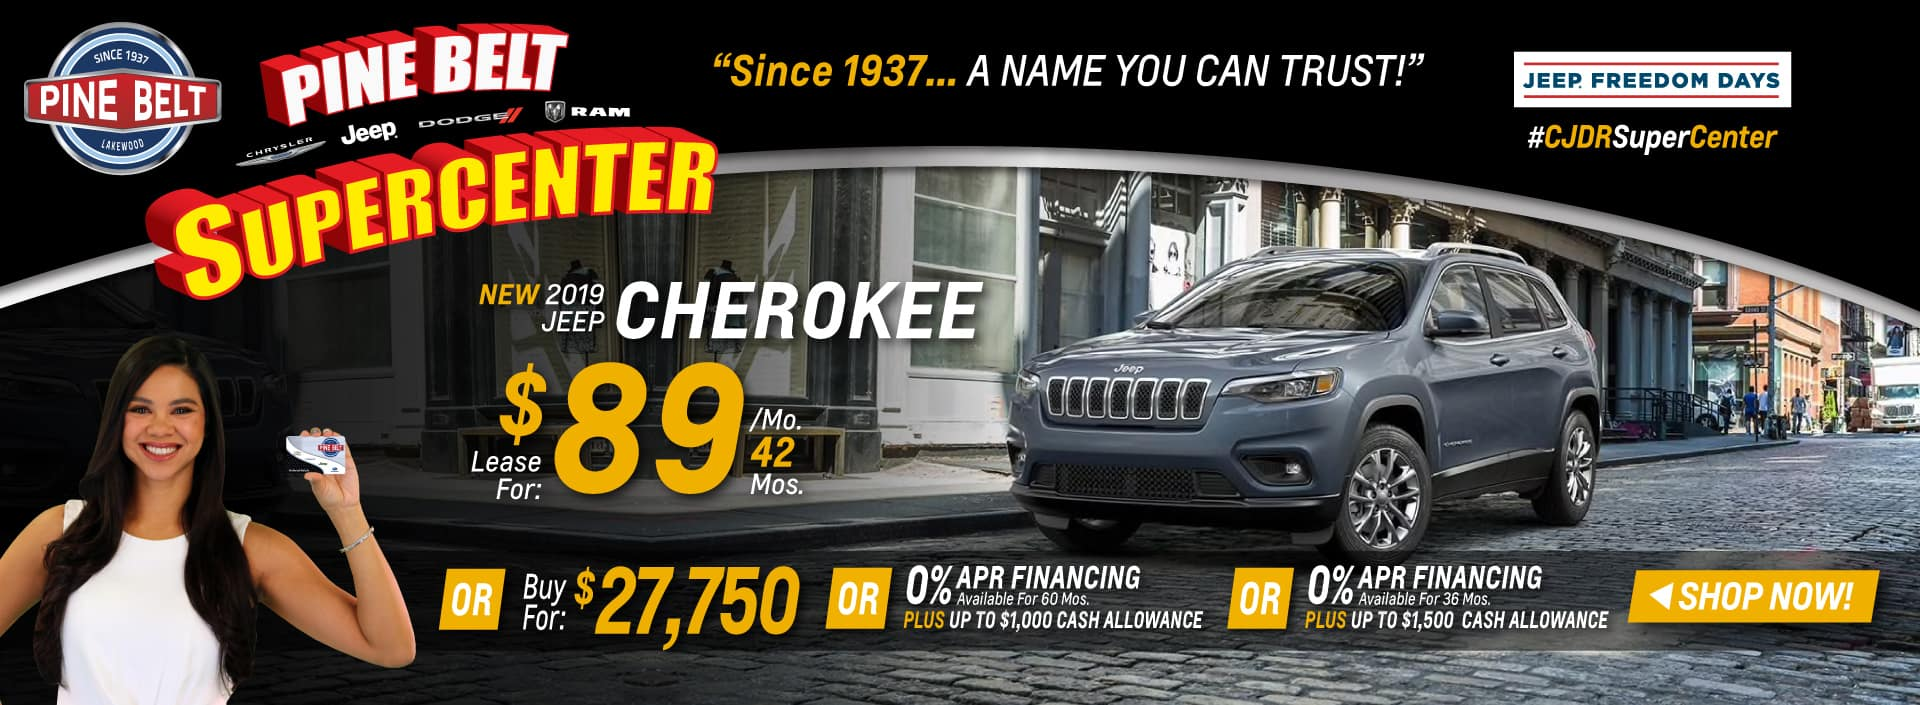 2019 Jeep Cherokee Sales Deals or Special in NJ